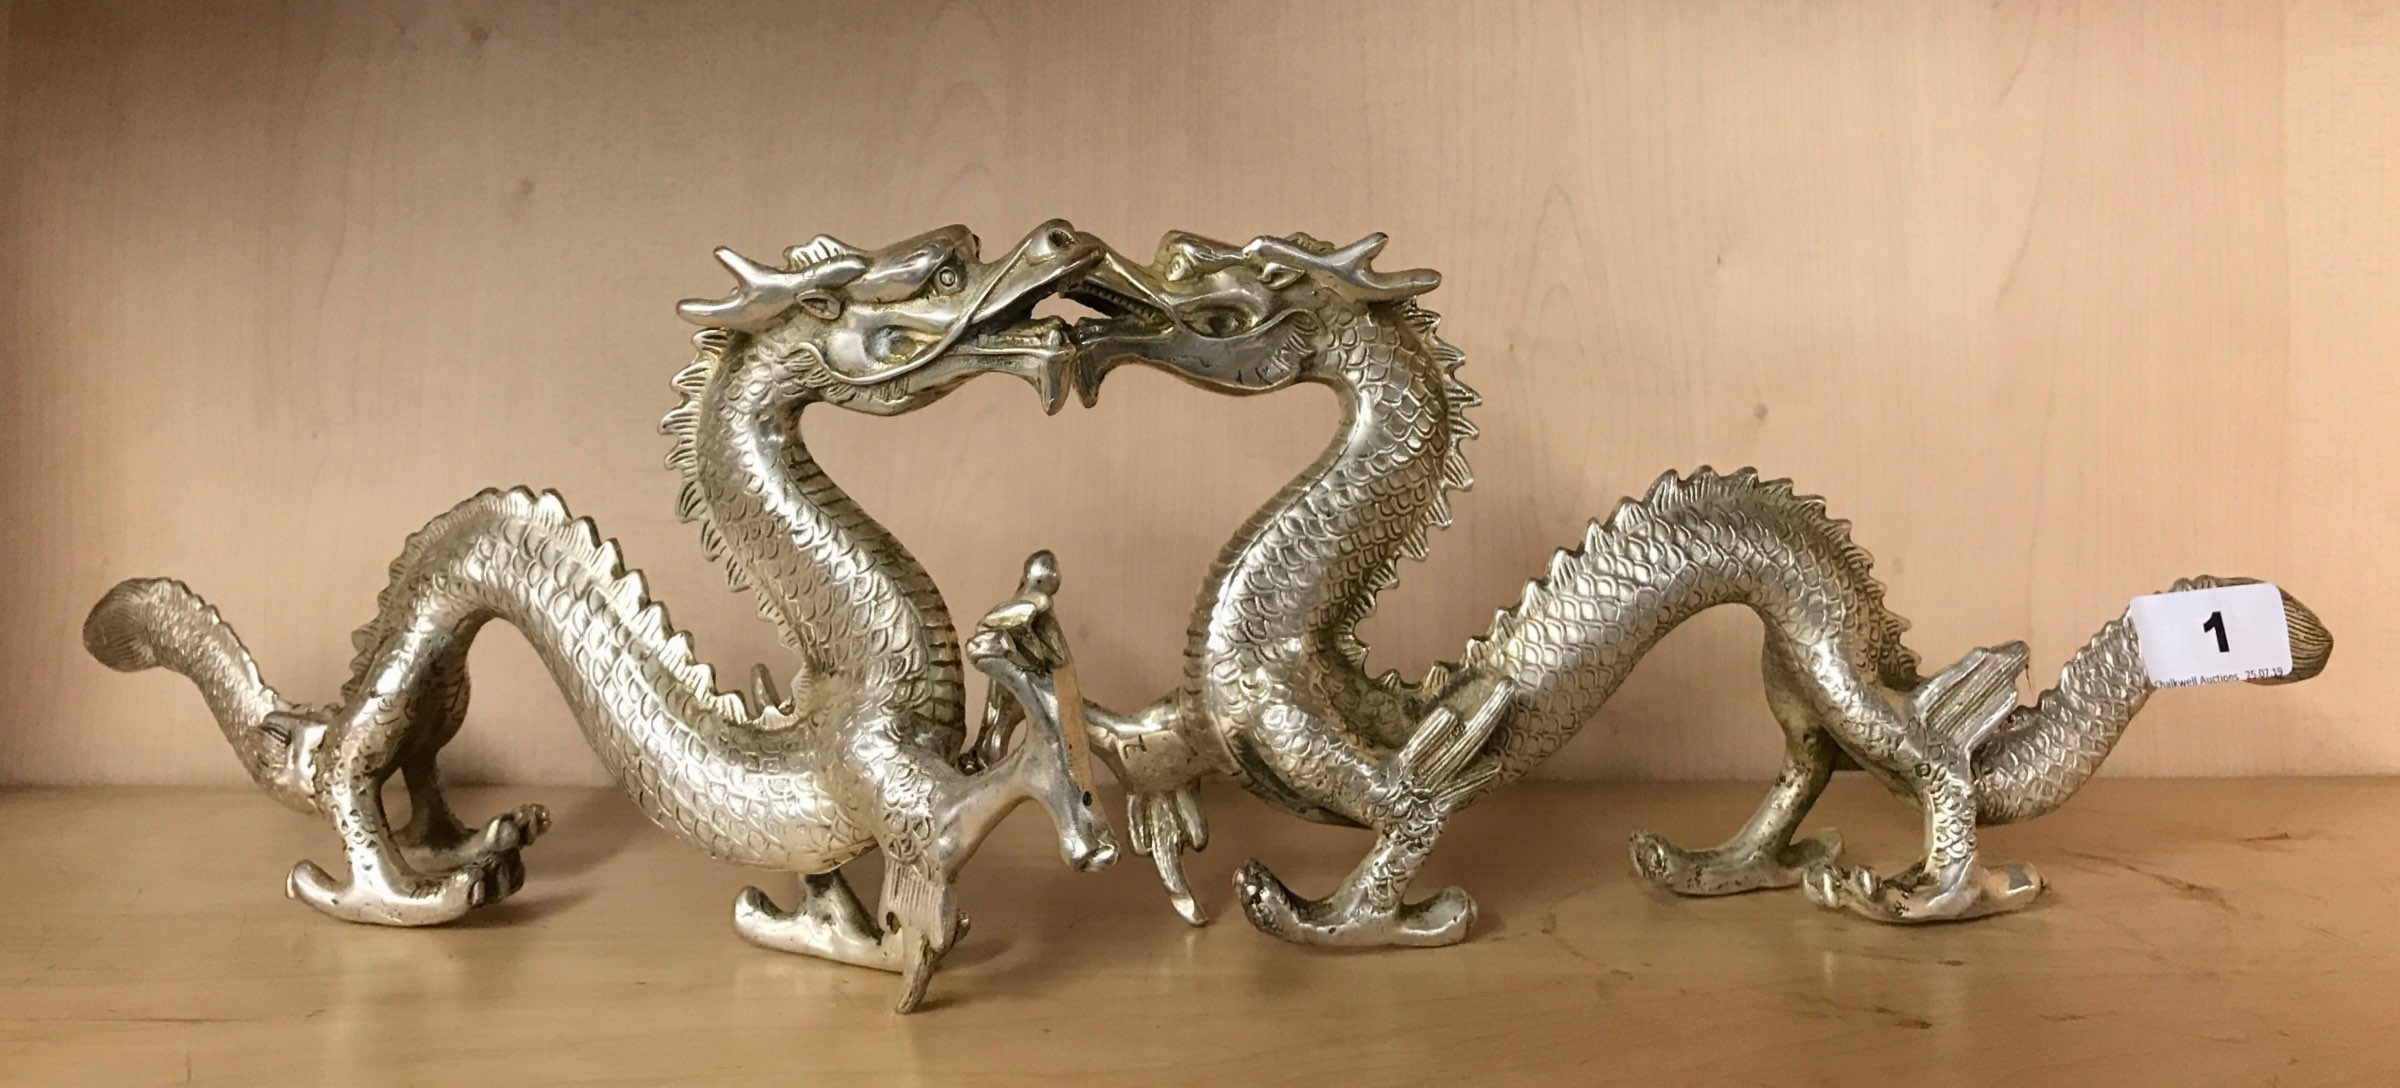 An estate sale of antiques, jewellery, paintings, oriental items and collectibles.